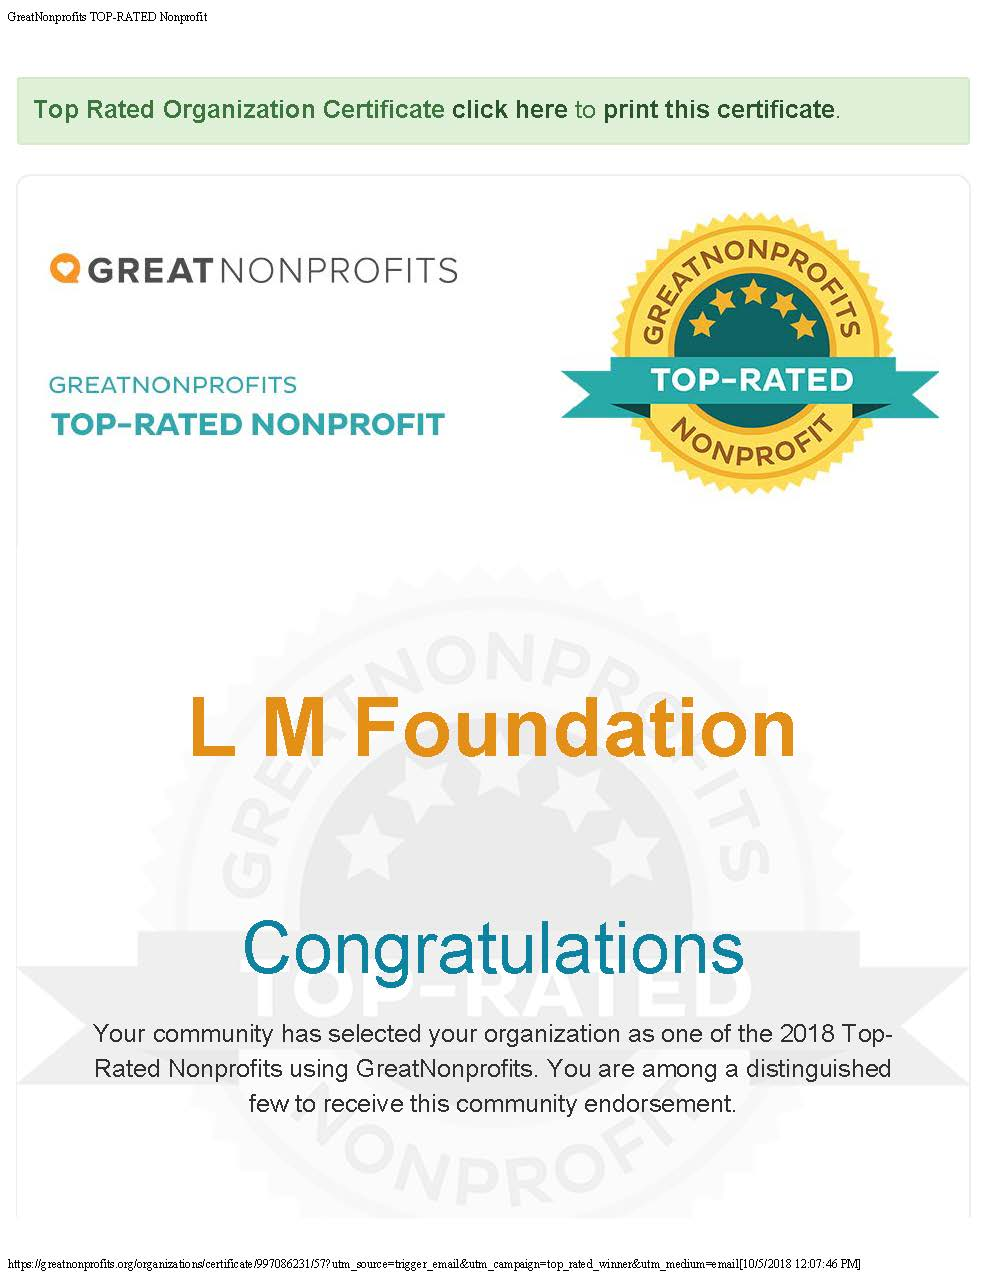 GreatNonprofits TOP-RATED Nonprofit_Page_1.jpg